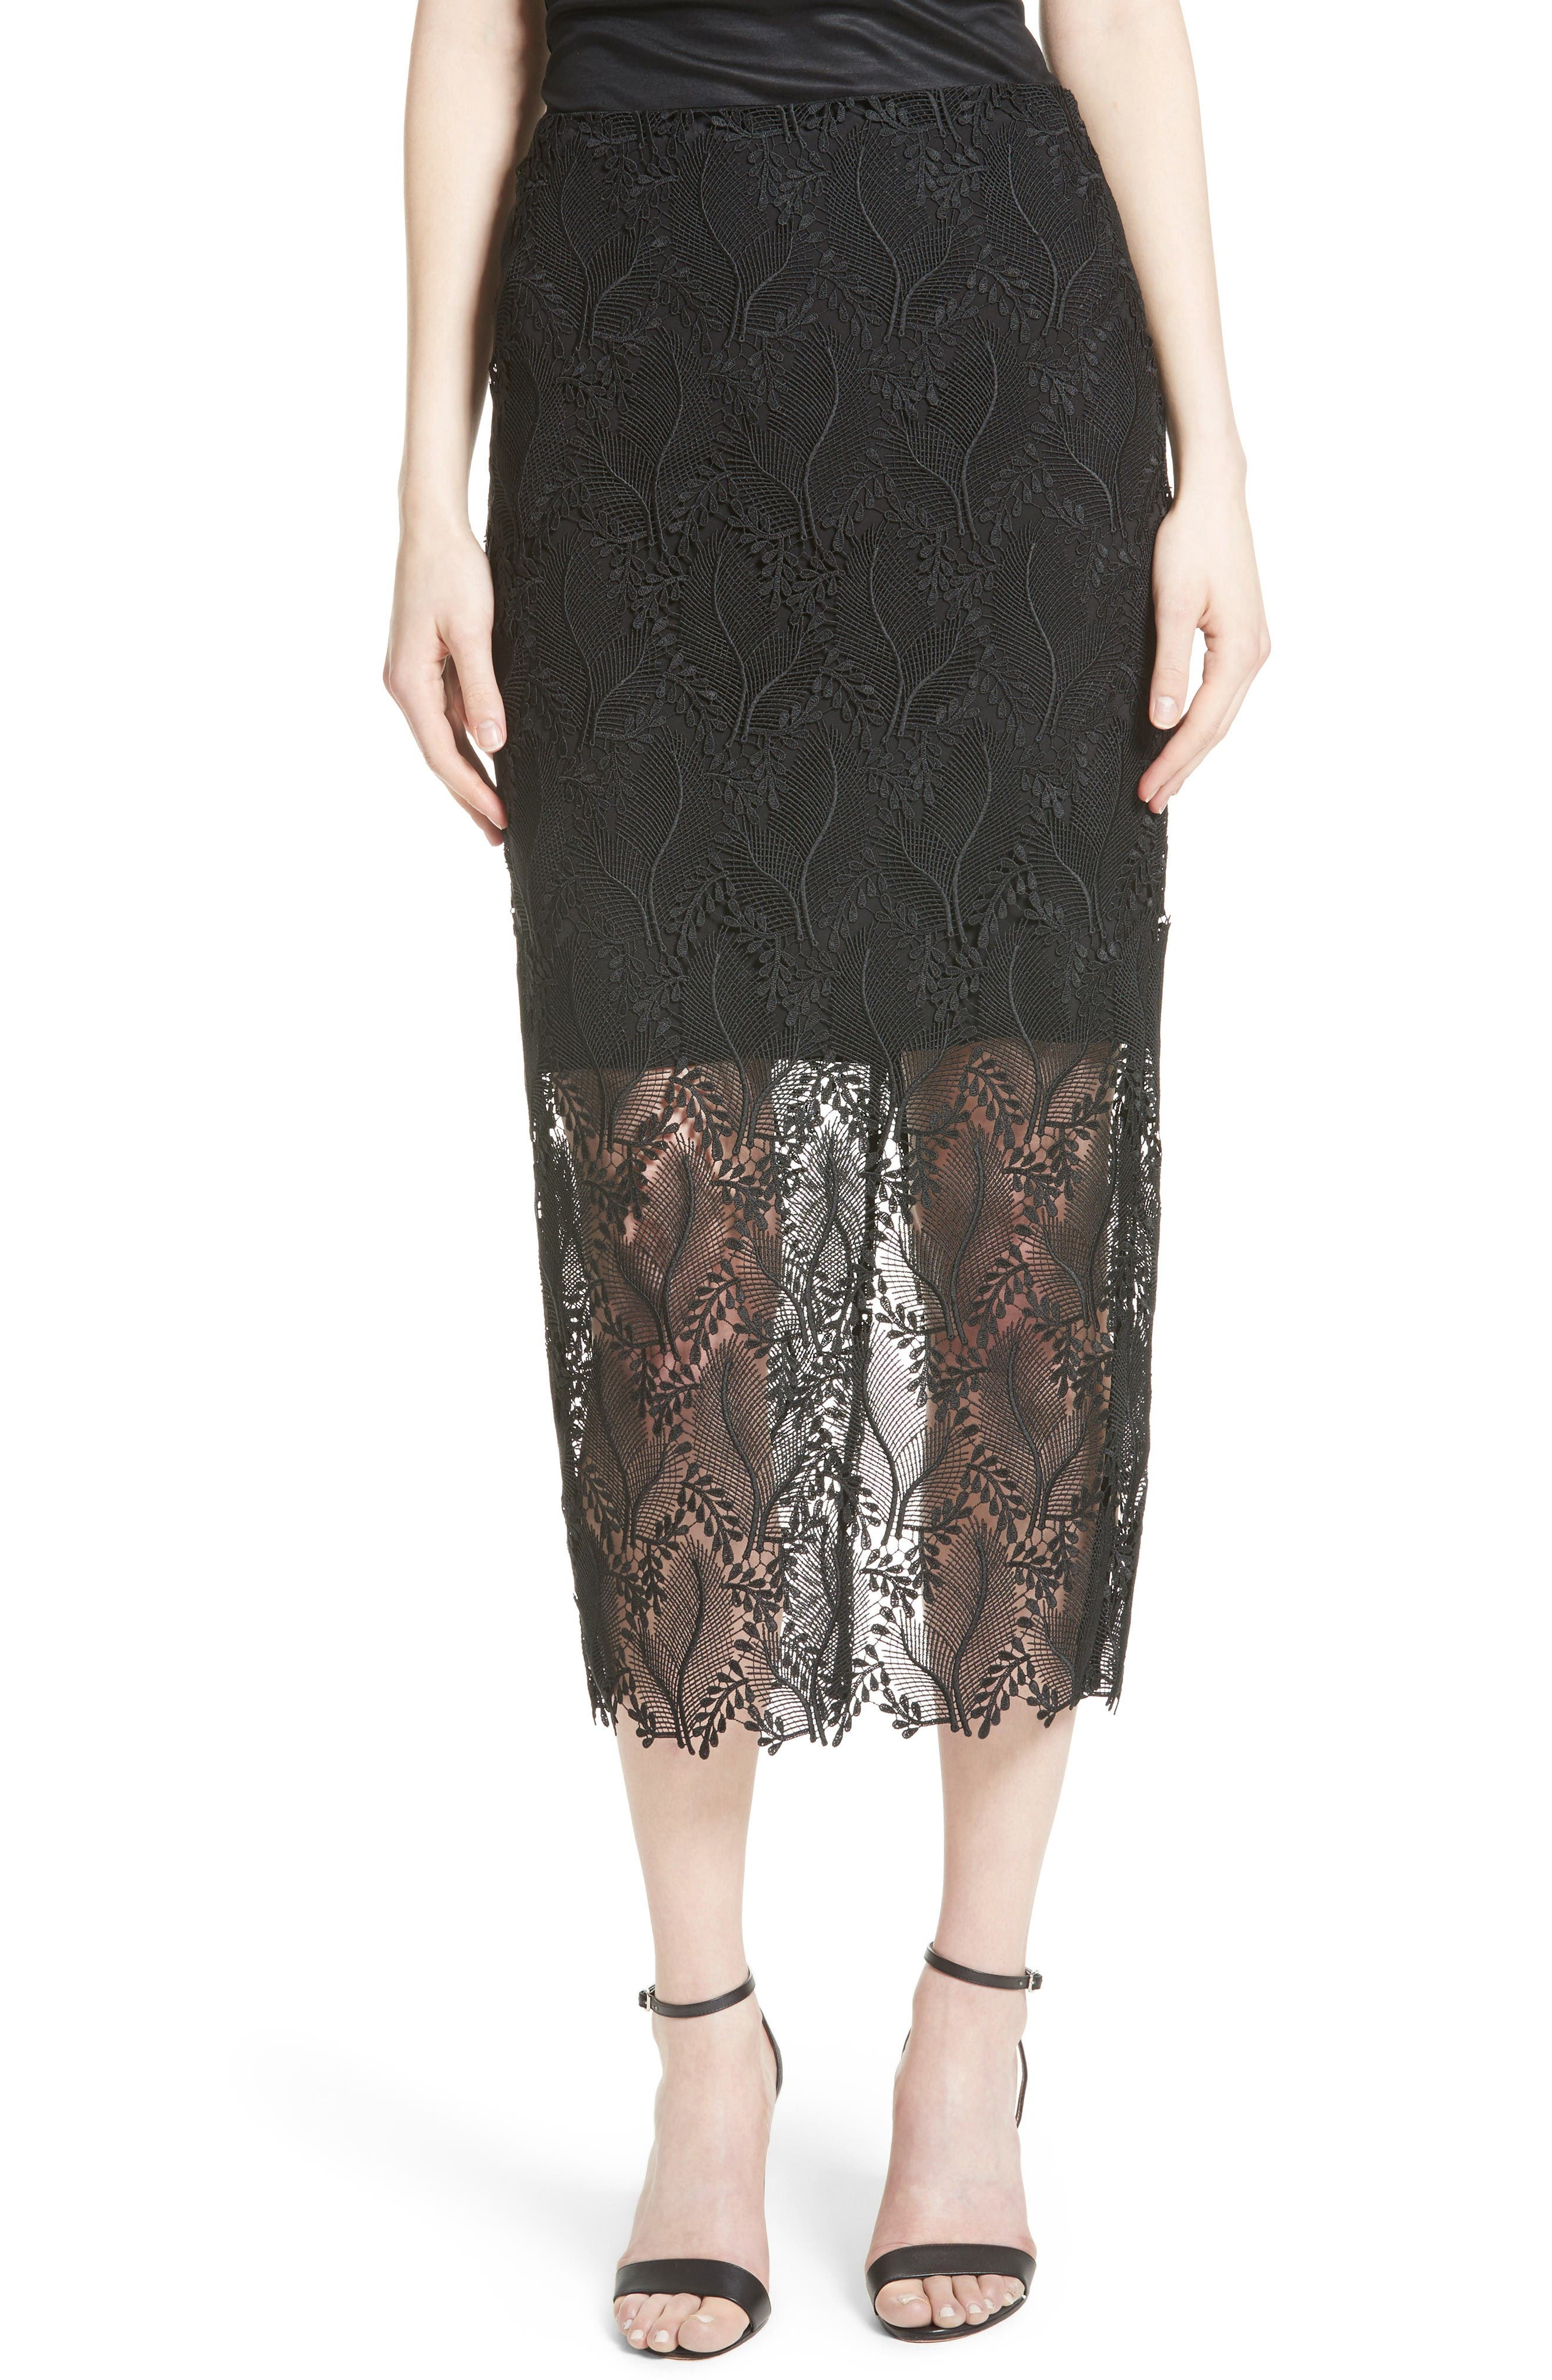 Alternate Image 1 Selected - Diane von Furstenberg Lace Overlay Pencil Skirt